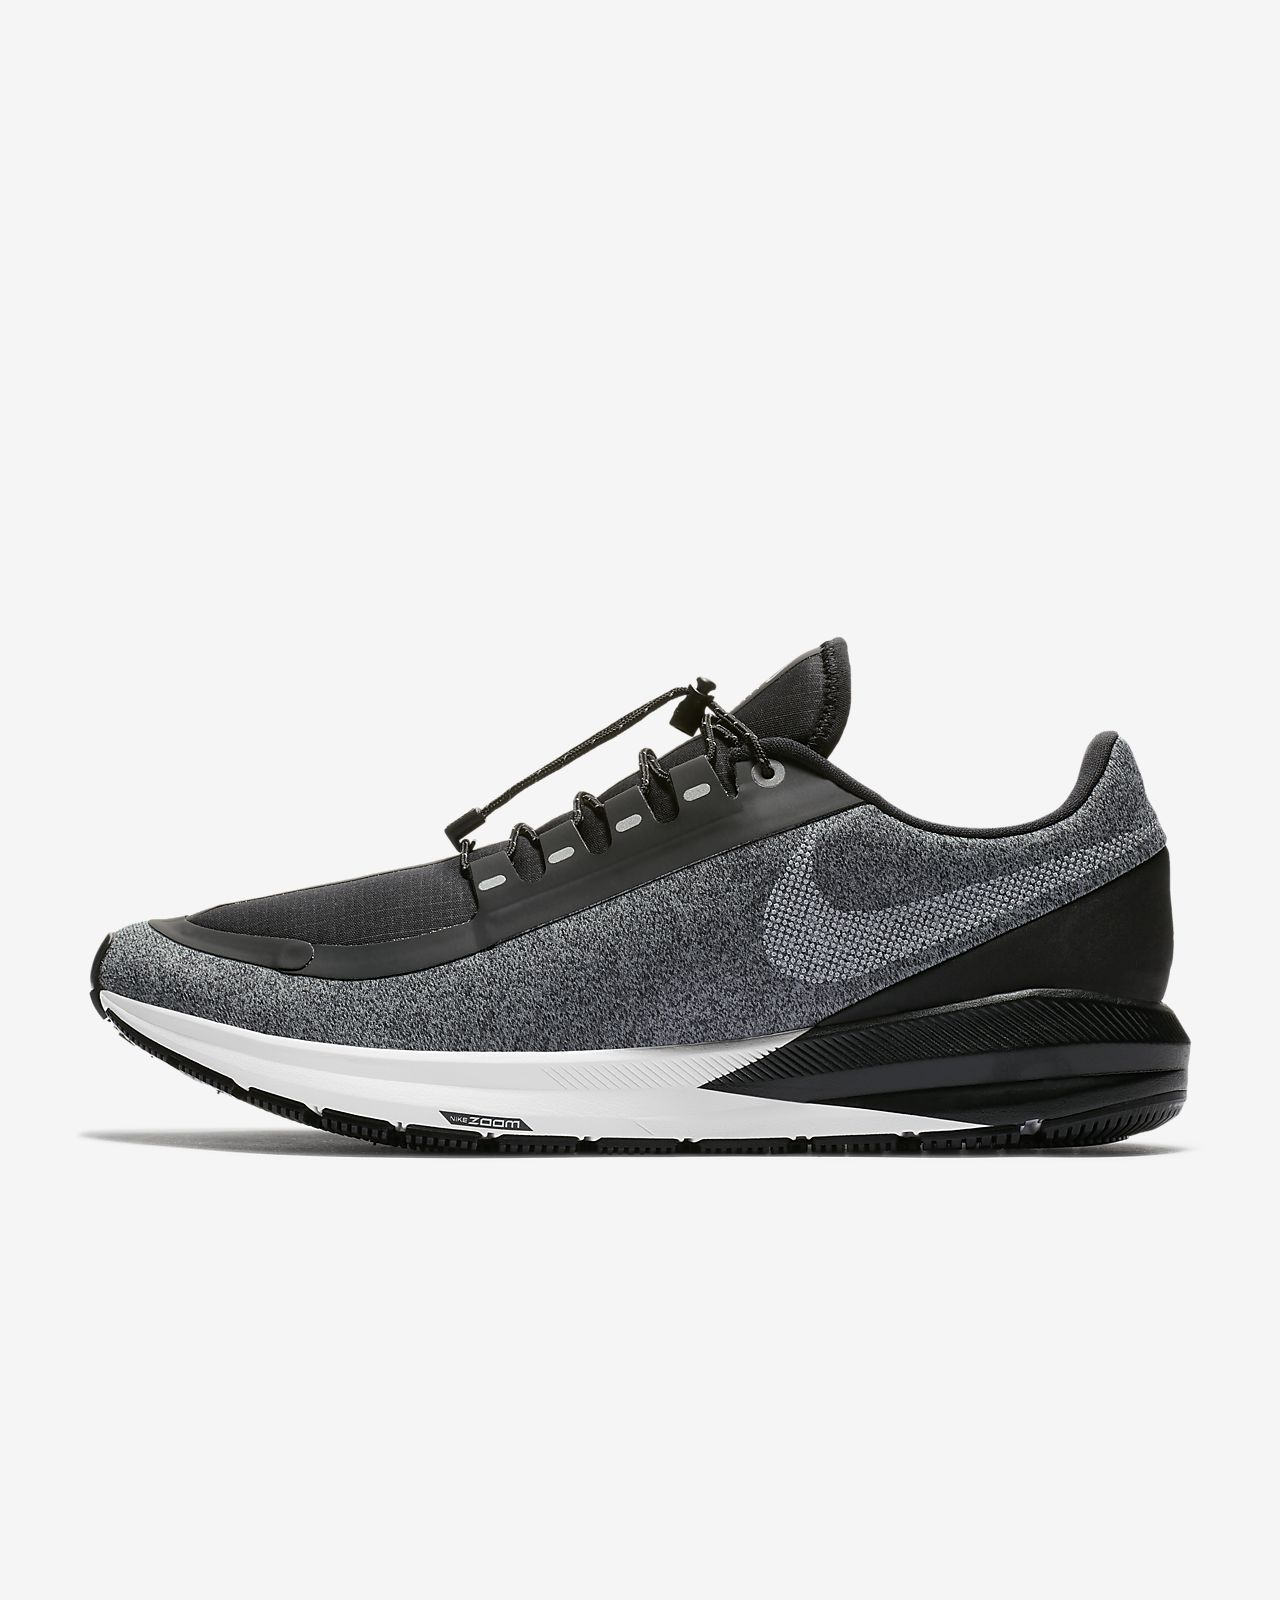 finest selection ce8fa 2b701 ... Nike Air Zoom Structure 22 Shield Water-Repellent løpesko til herre